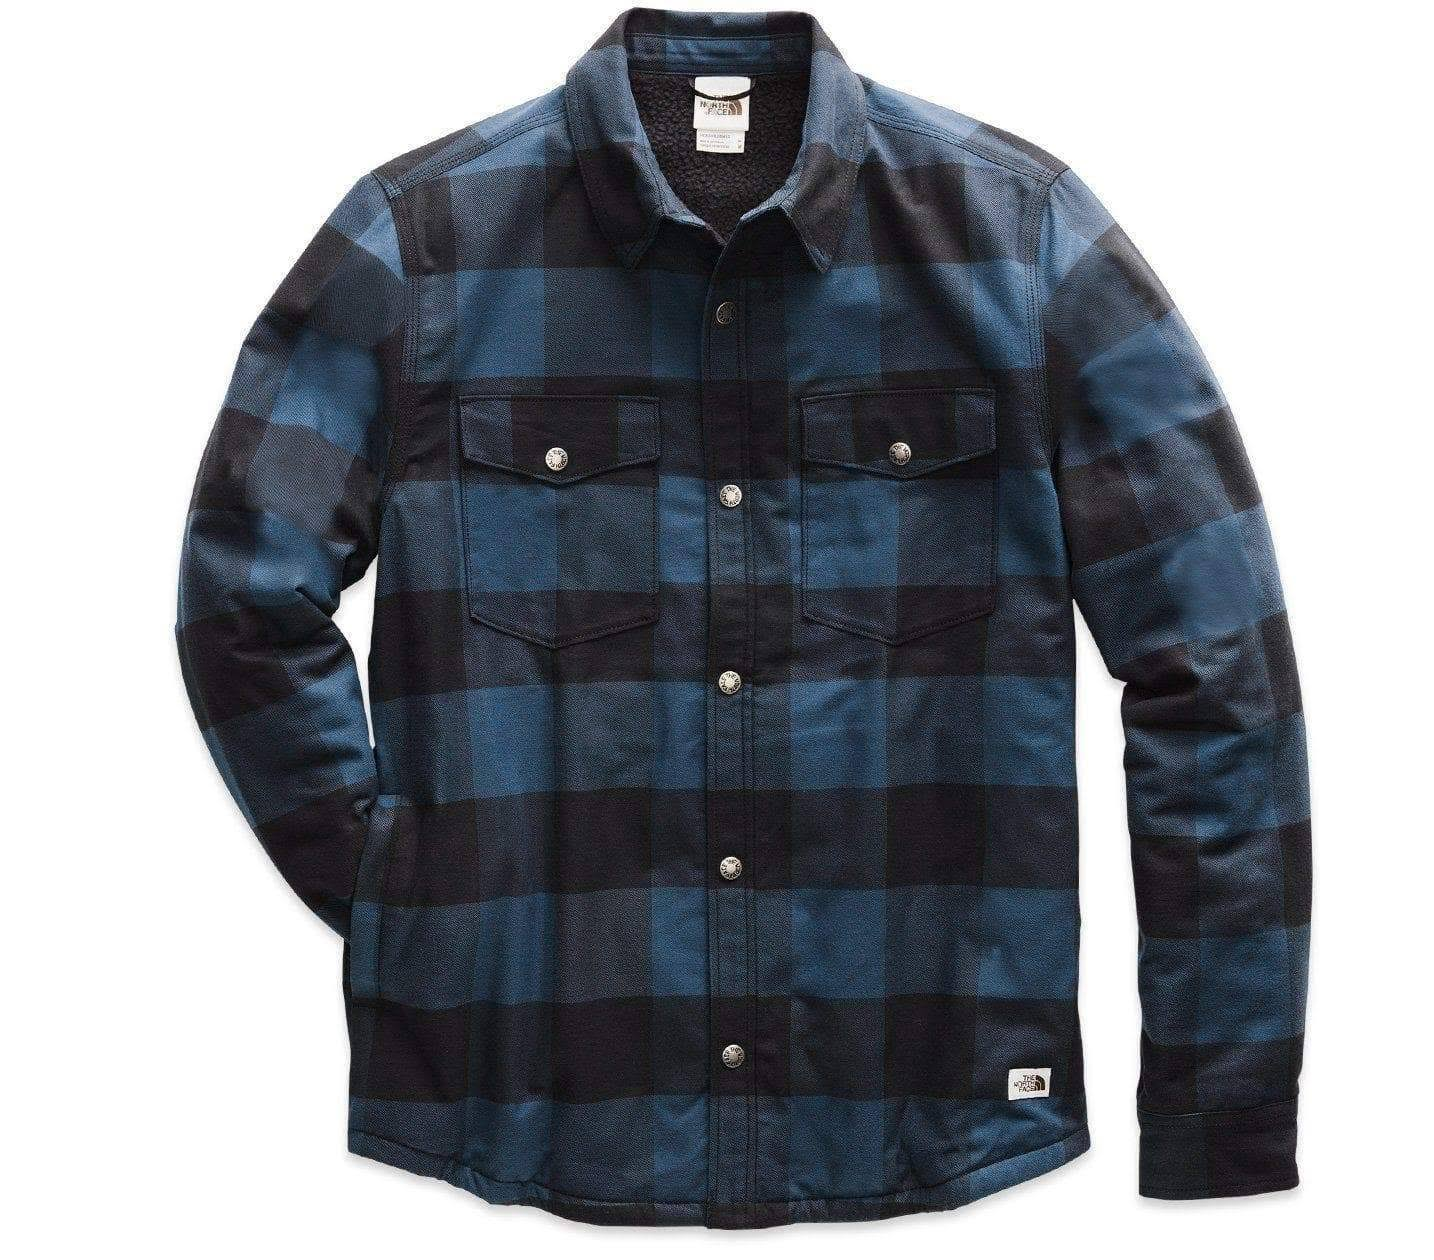 The North Face Men's Campshire Shirt - Blue Wing Teal Buffalo Plaid Print